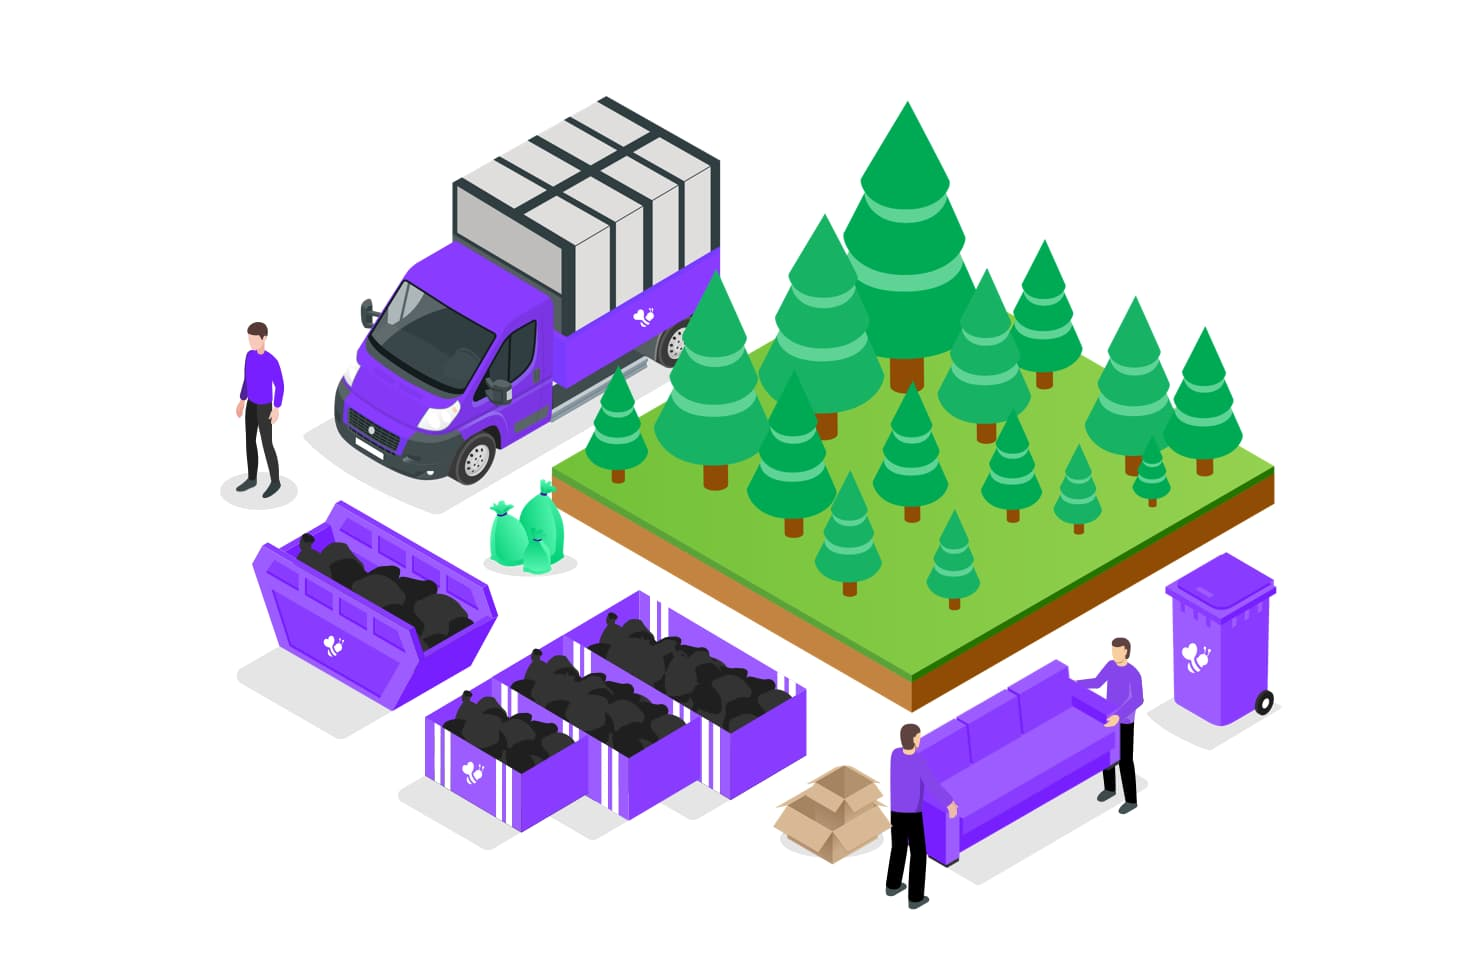 waste removal and trees graphic